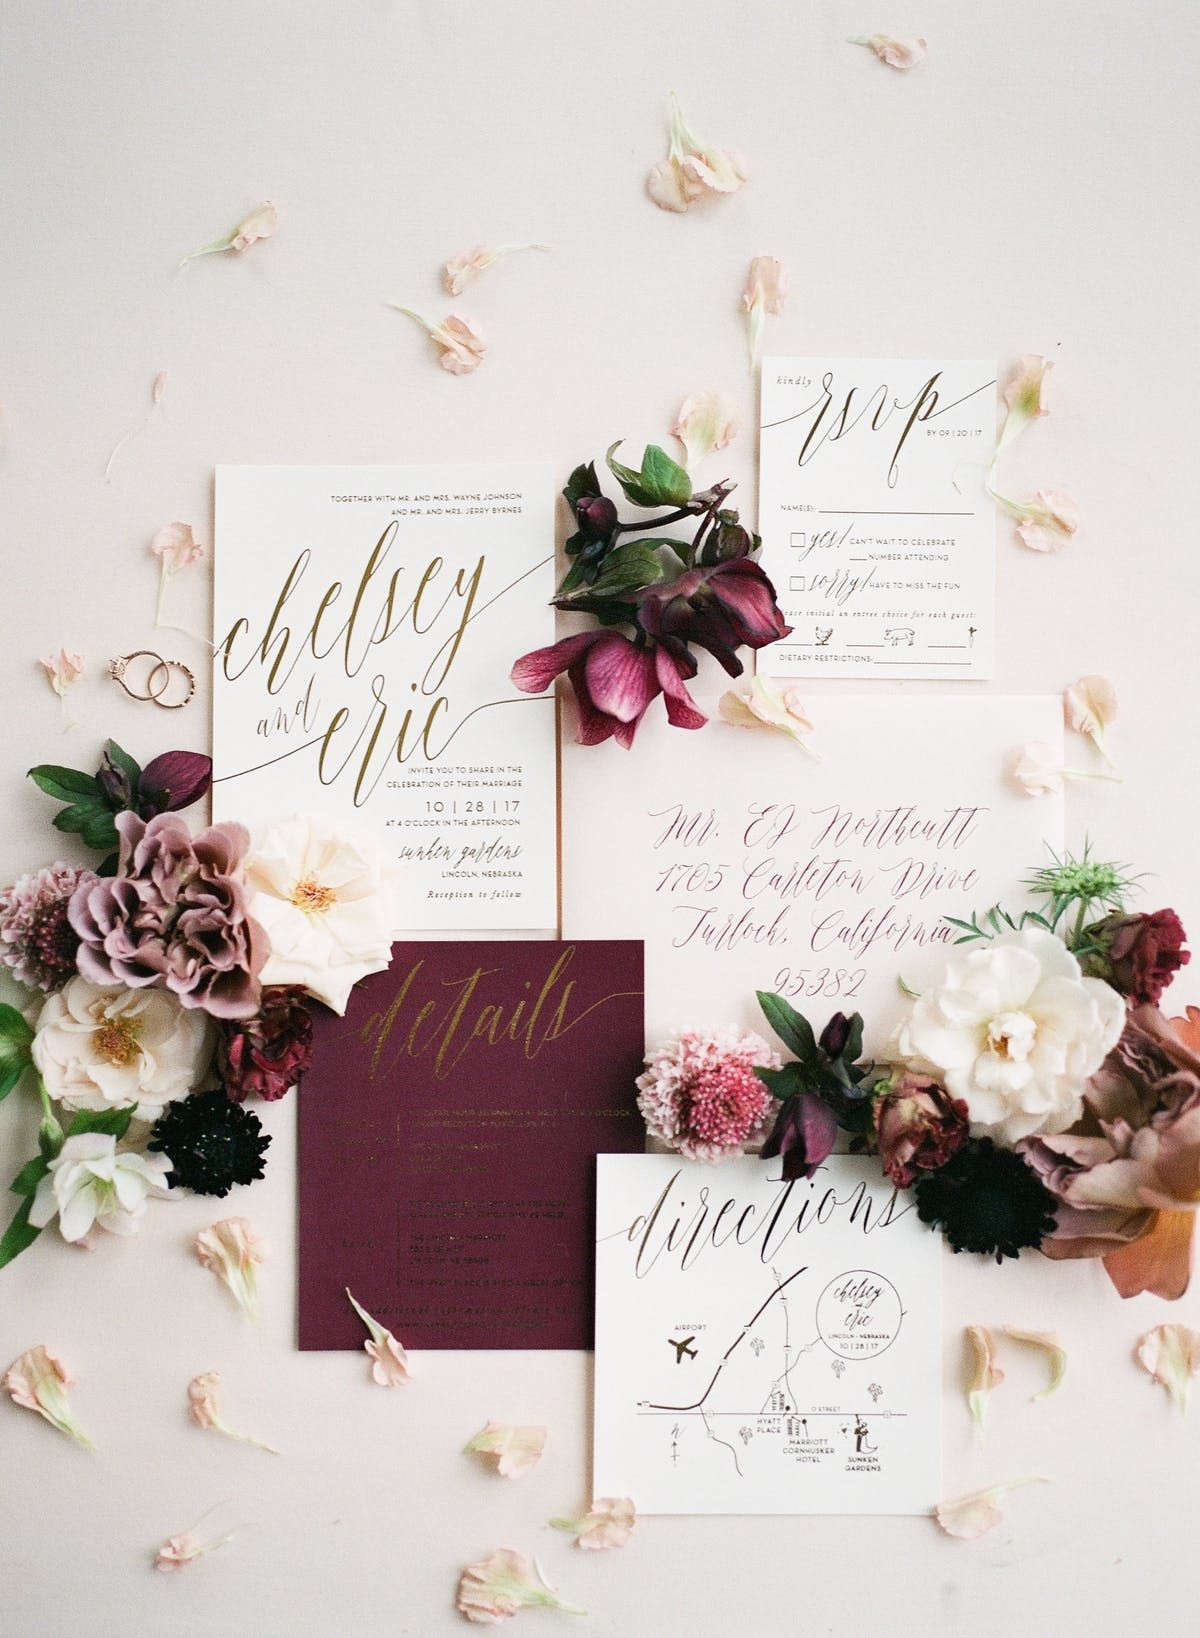 Rustic Wedding Styles Inspired By Copper In 2018 Wedding